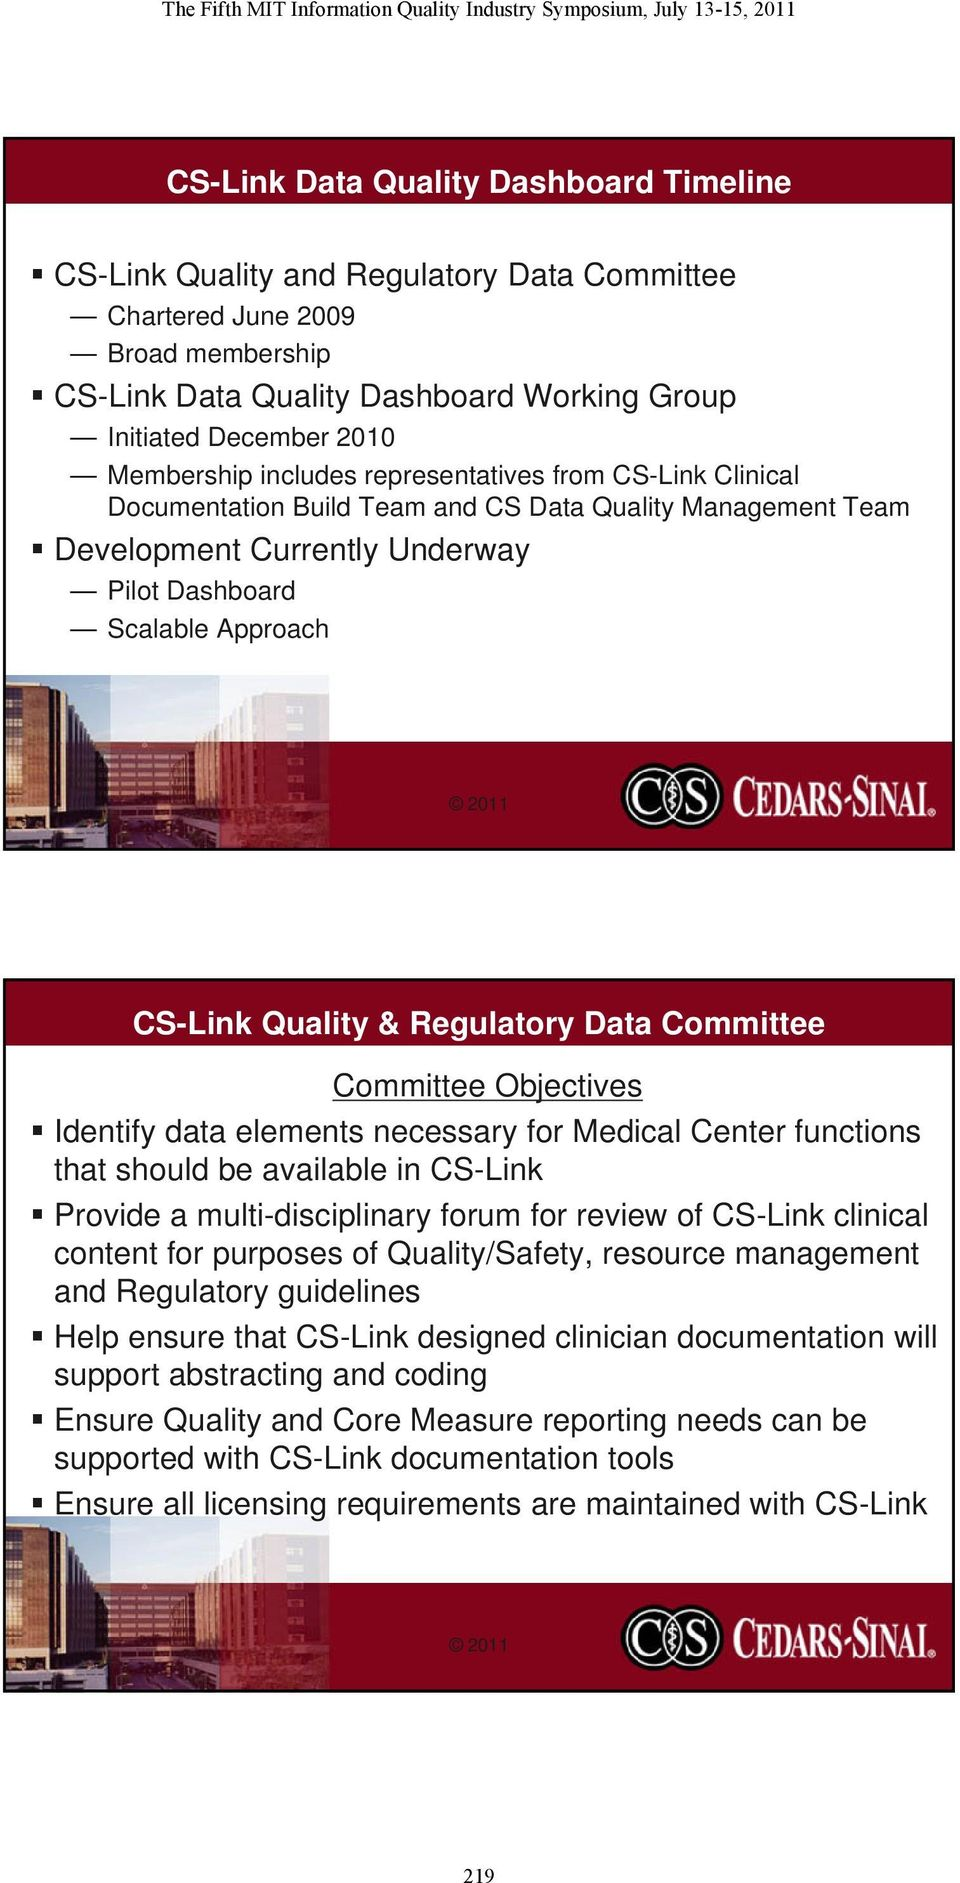 Quality & Regulatory Data Committee Committee Objectives Identify data elements necessary for Medical Center functions that should be available in CS-Link Provide a multi-disciplinary forum for